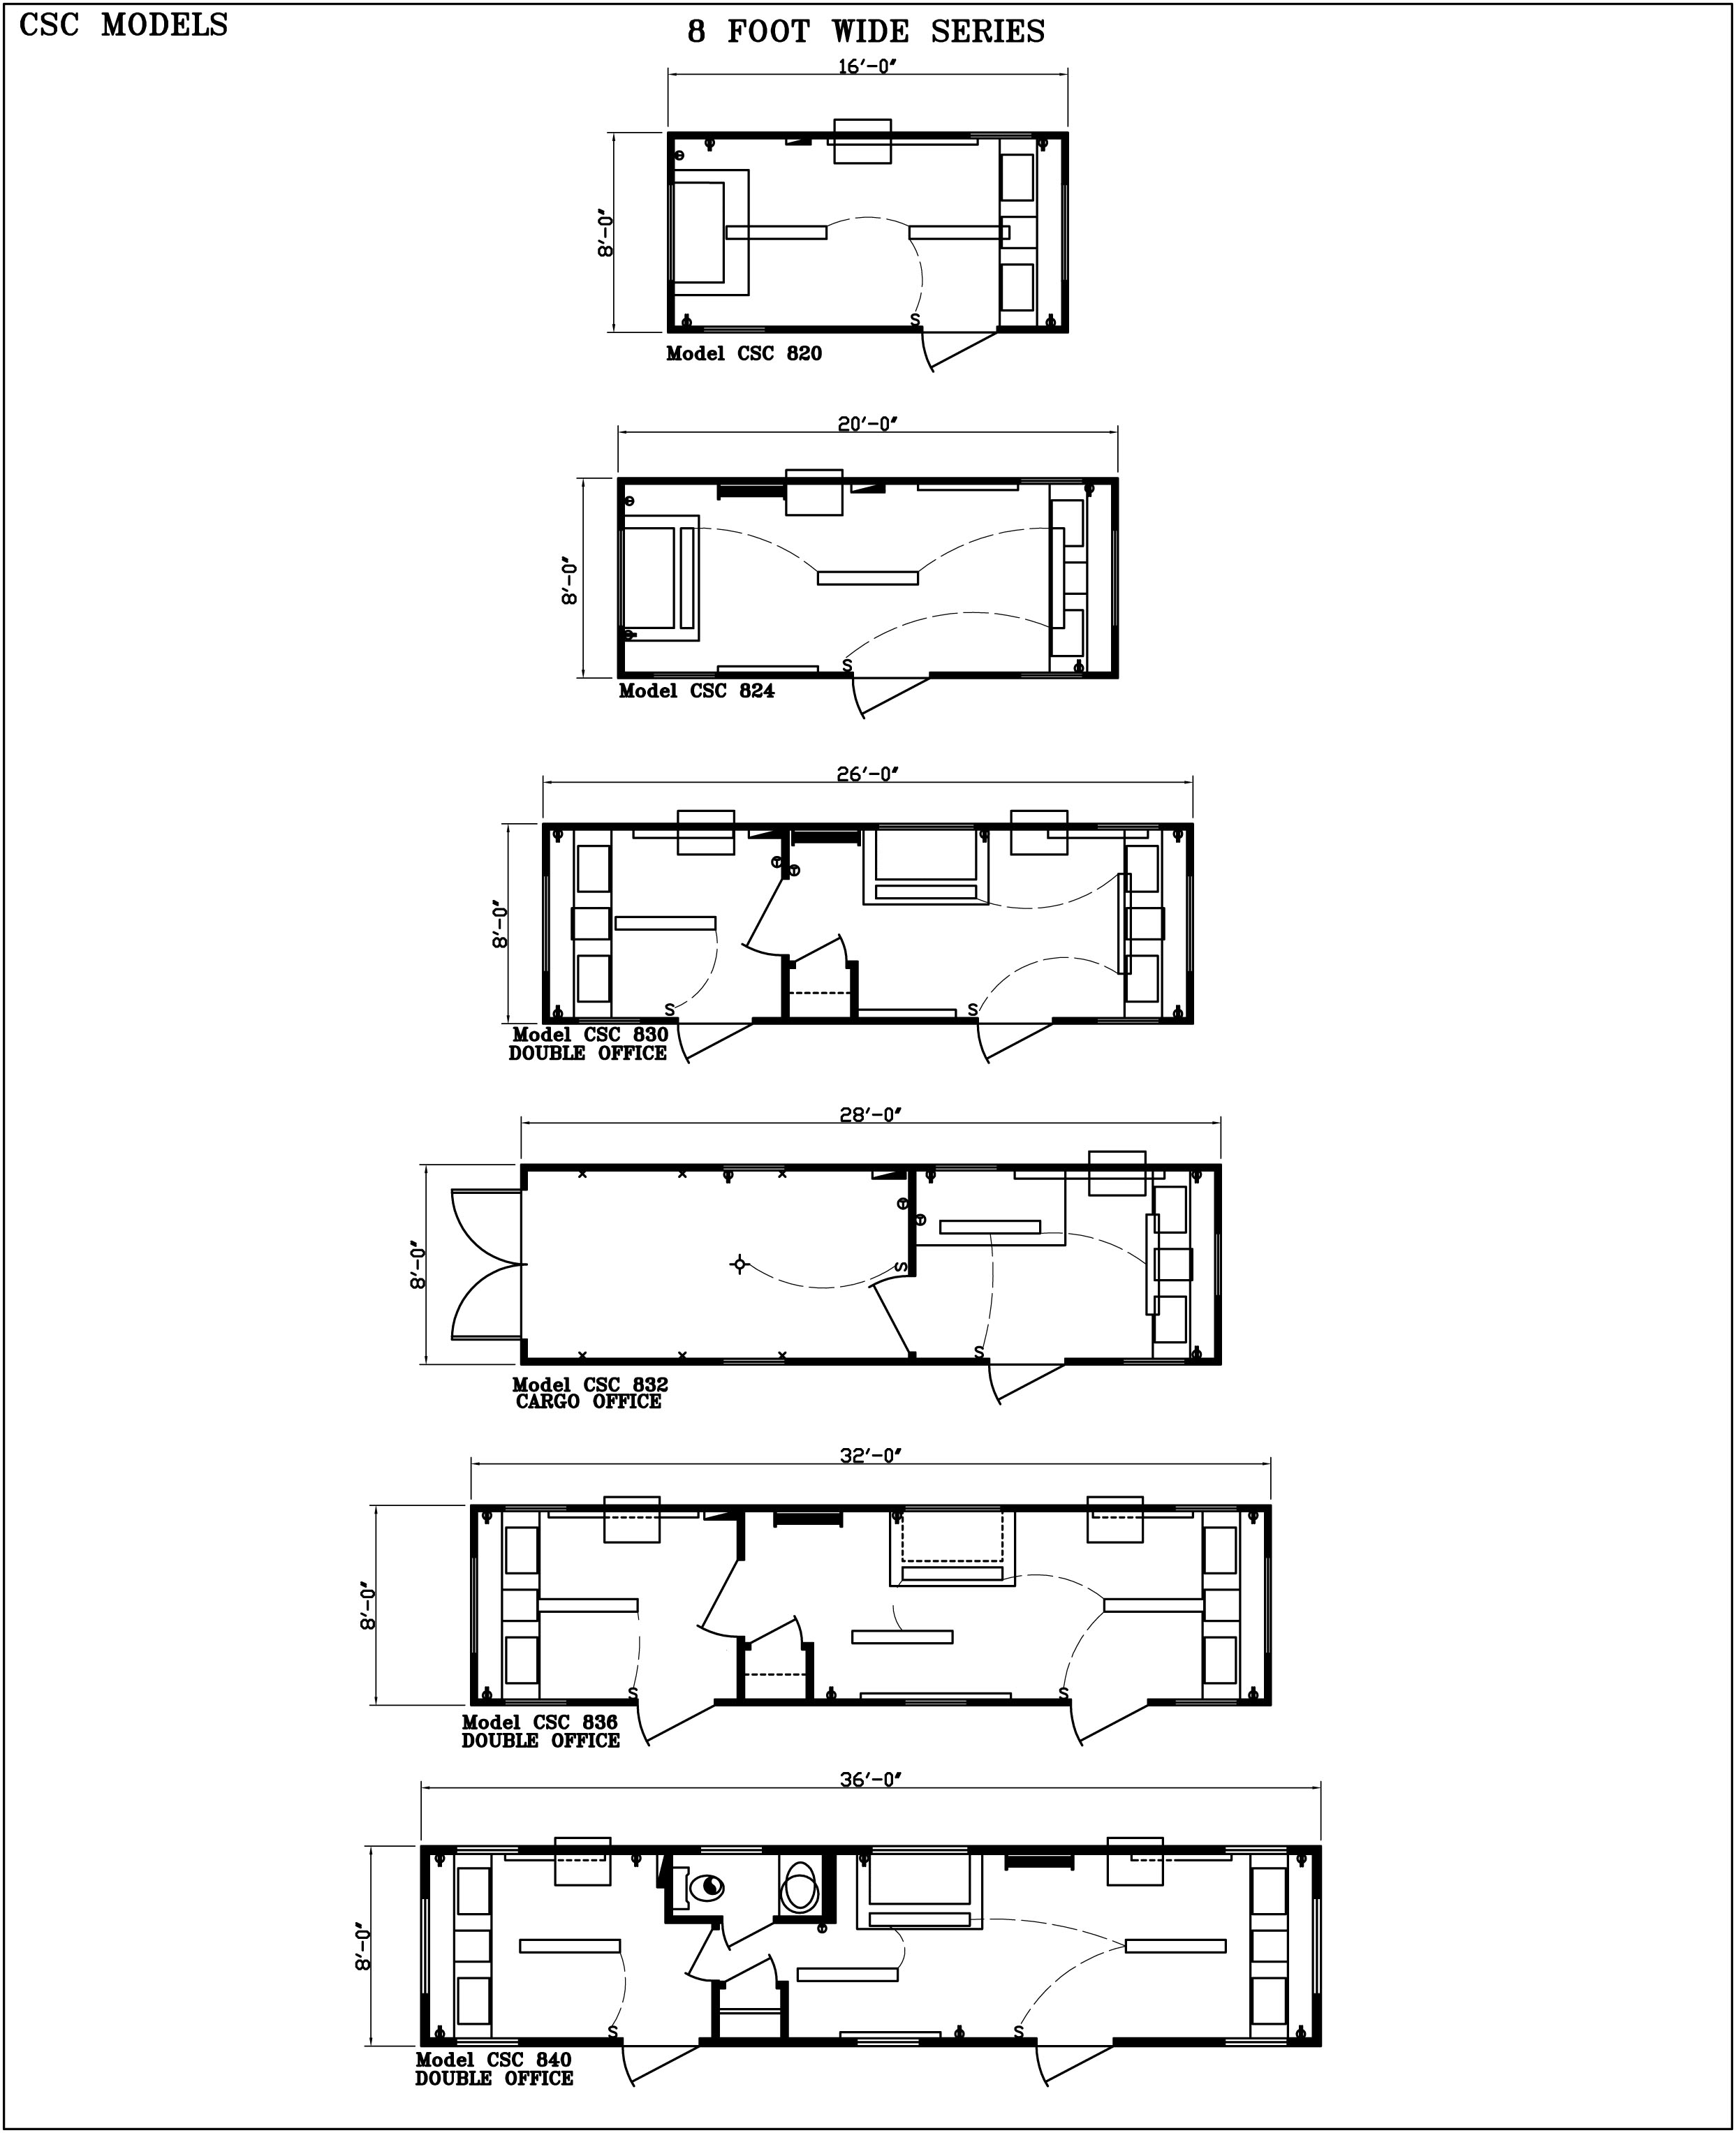 Modular Classroom Floor Plans ~ Modular building floor plans commercial structures corp